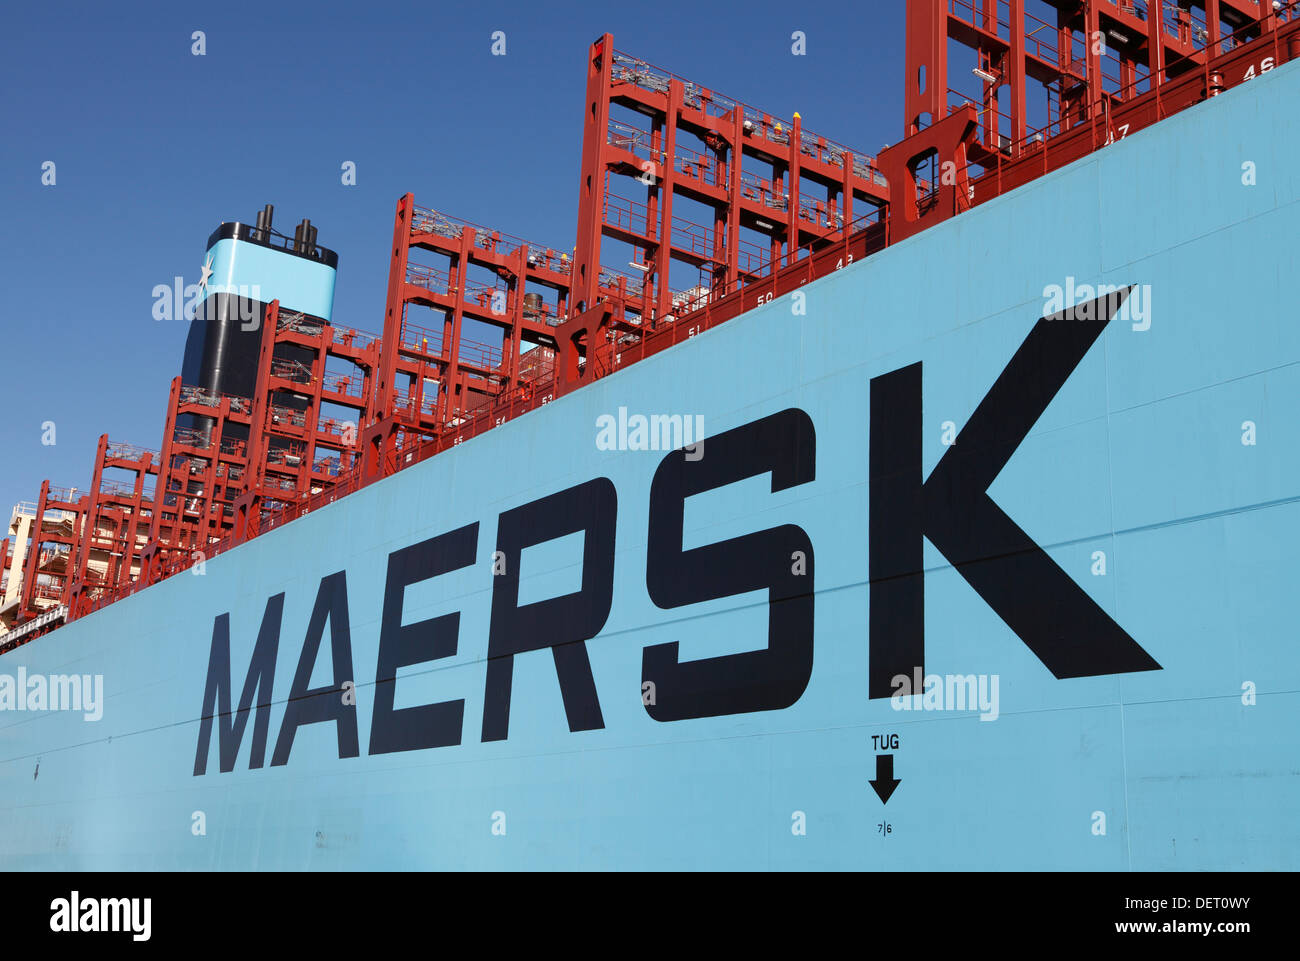 Copenhagen, Denmark, Sept. 23rd. Maersk Line's triple-E ship Majestic Maersk arrived to Langelinie in port of Copenhagen last night for a week of presentation and name giving ceremony. On Wednesday Her Royal Highness the Crown Princess names the world's largest ship.This marks the opening of the vessel and the exhibition at Langelinie, and the public is offered a tour on the container ship. More than 42,000 people have already booked their ticket to board the ship, 400m long and 59m wide. The Majestic Maersk is the second of Maersk's 20 ordered Triple-E ships. Credit:  Niels Quist / Alamy Liv - Stock Image